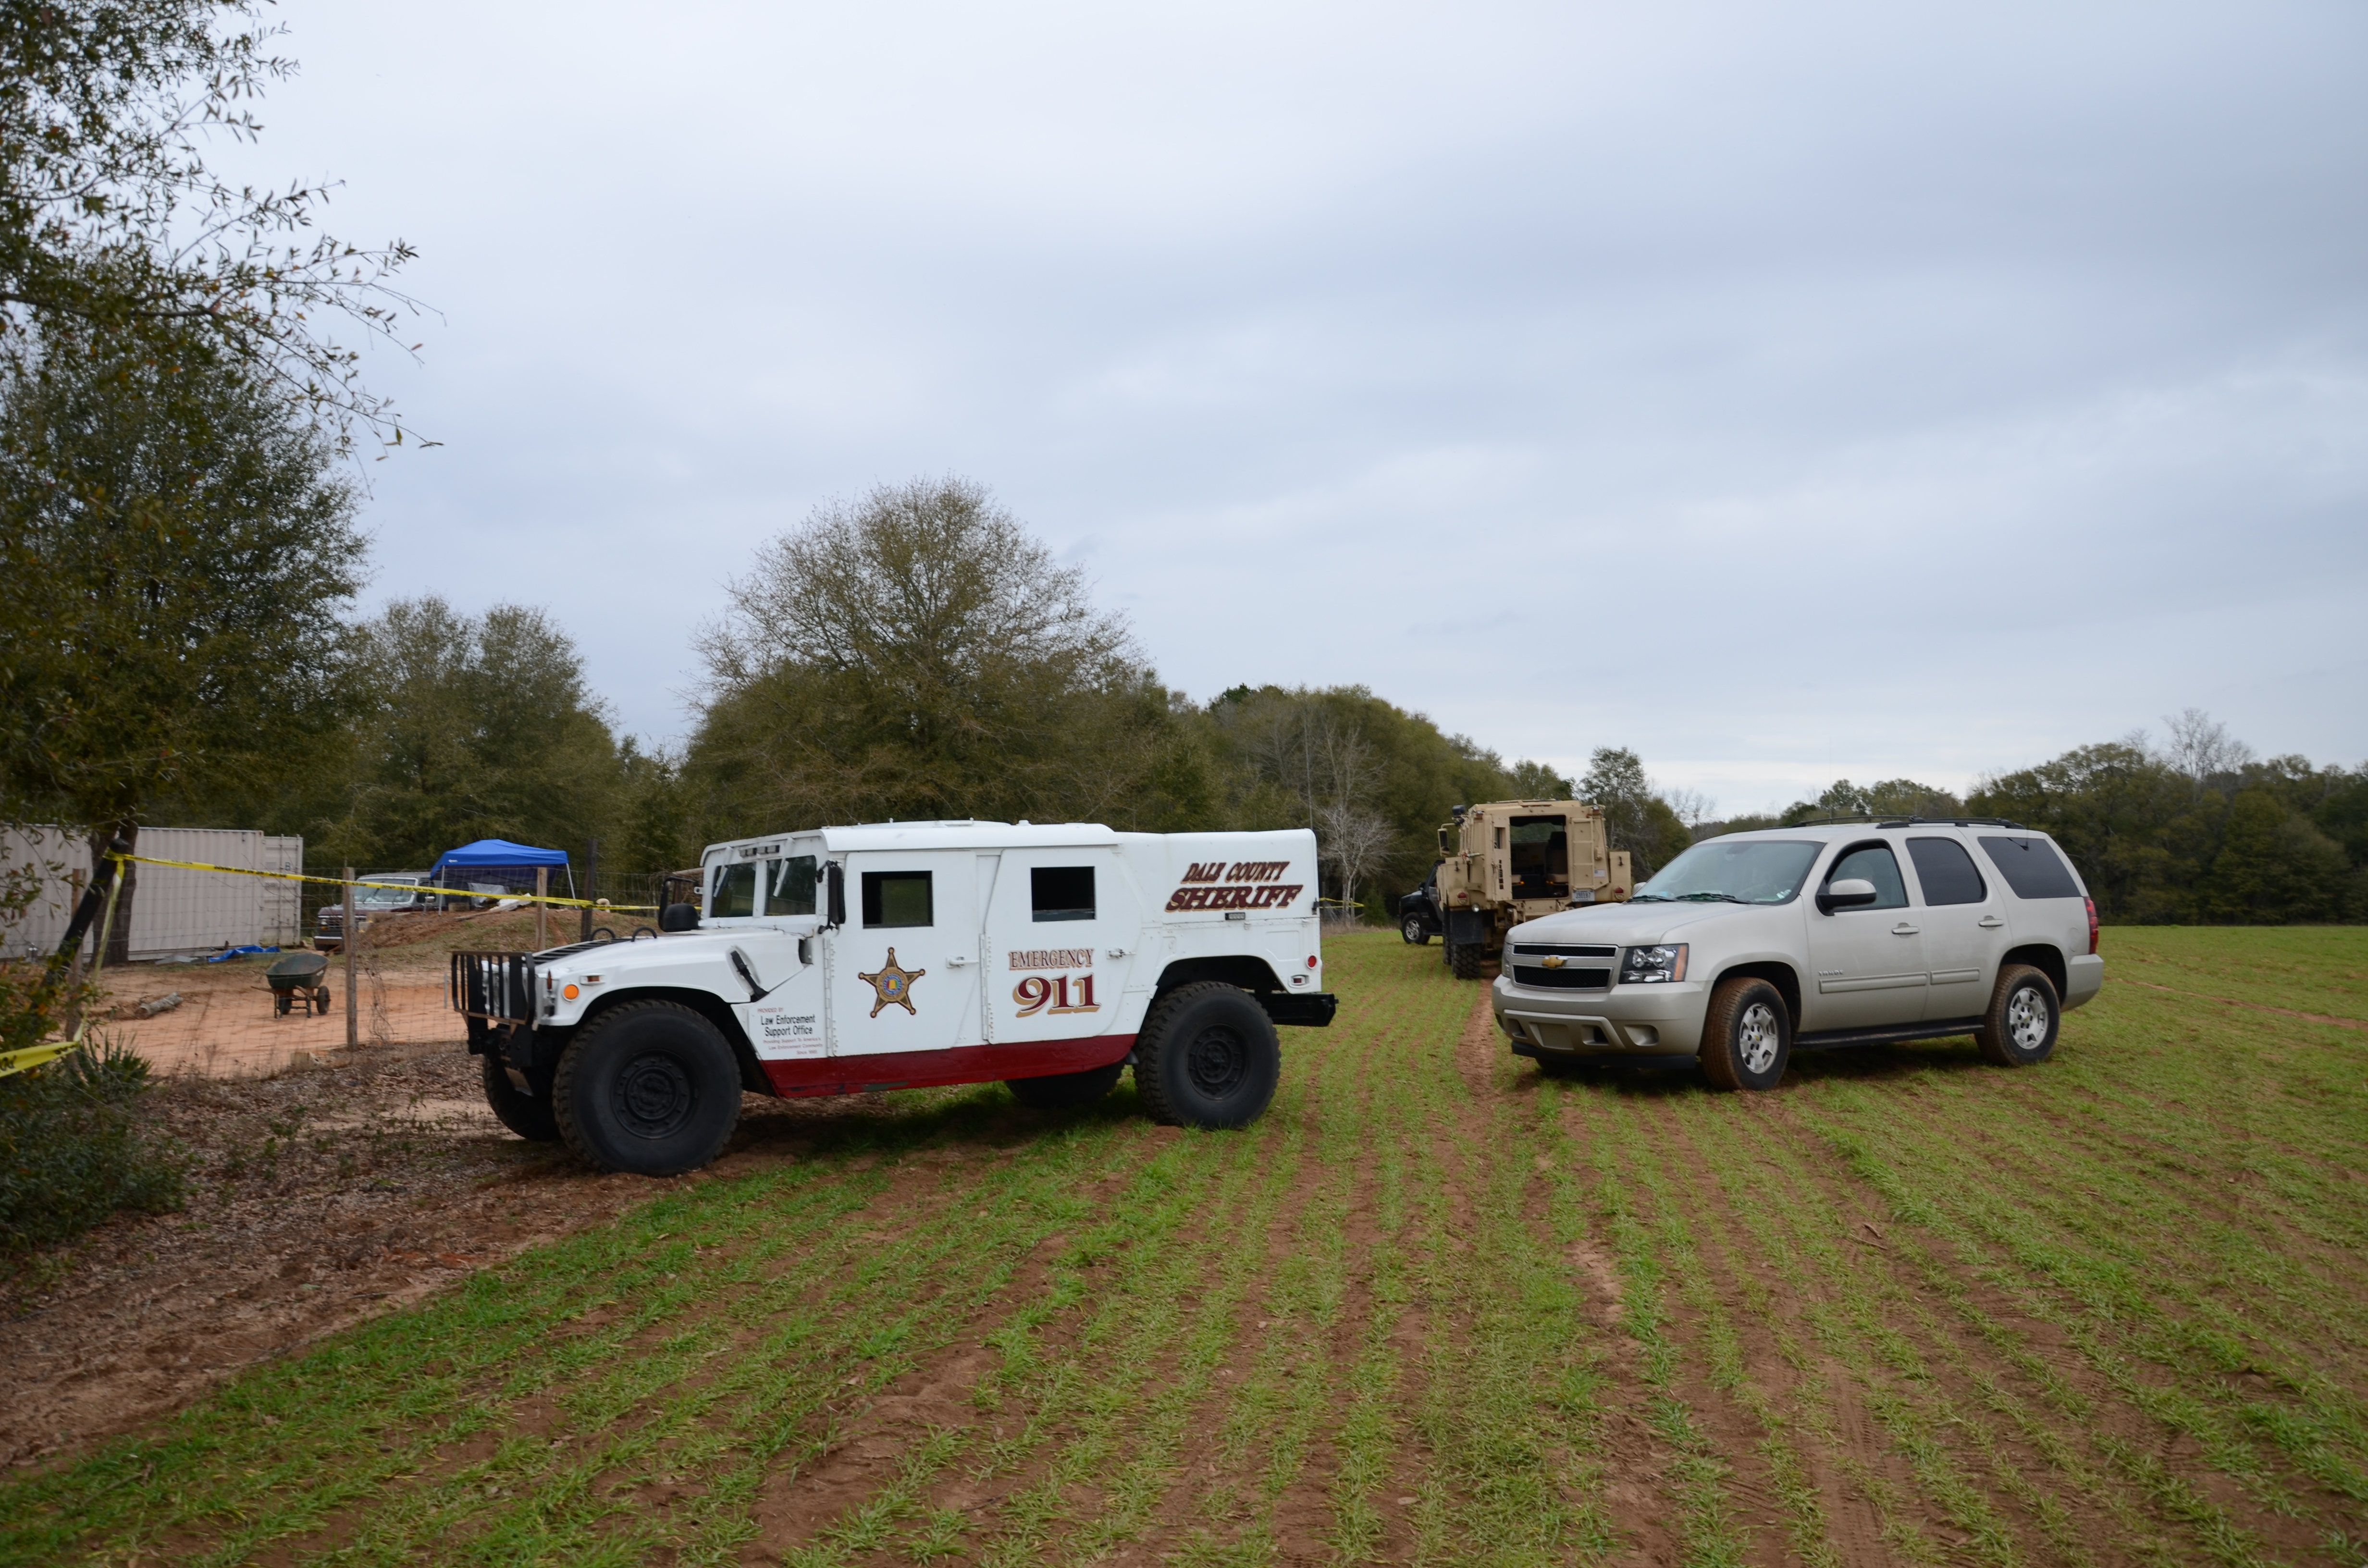 File:Dale County Sheriff HMMWV at Midland City hostage bunker.jpgbalance of dale county